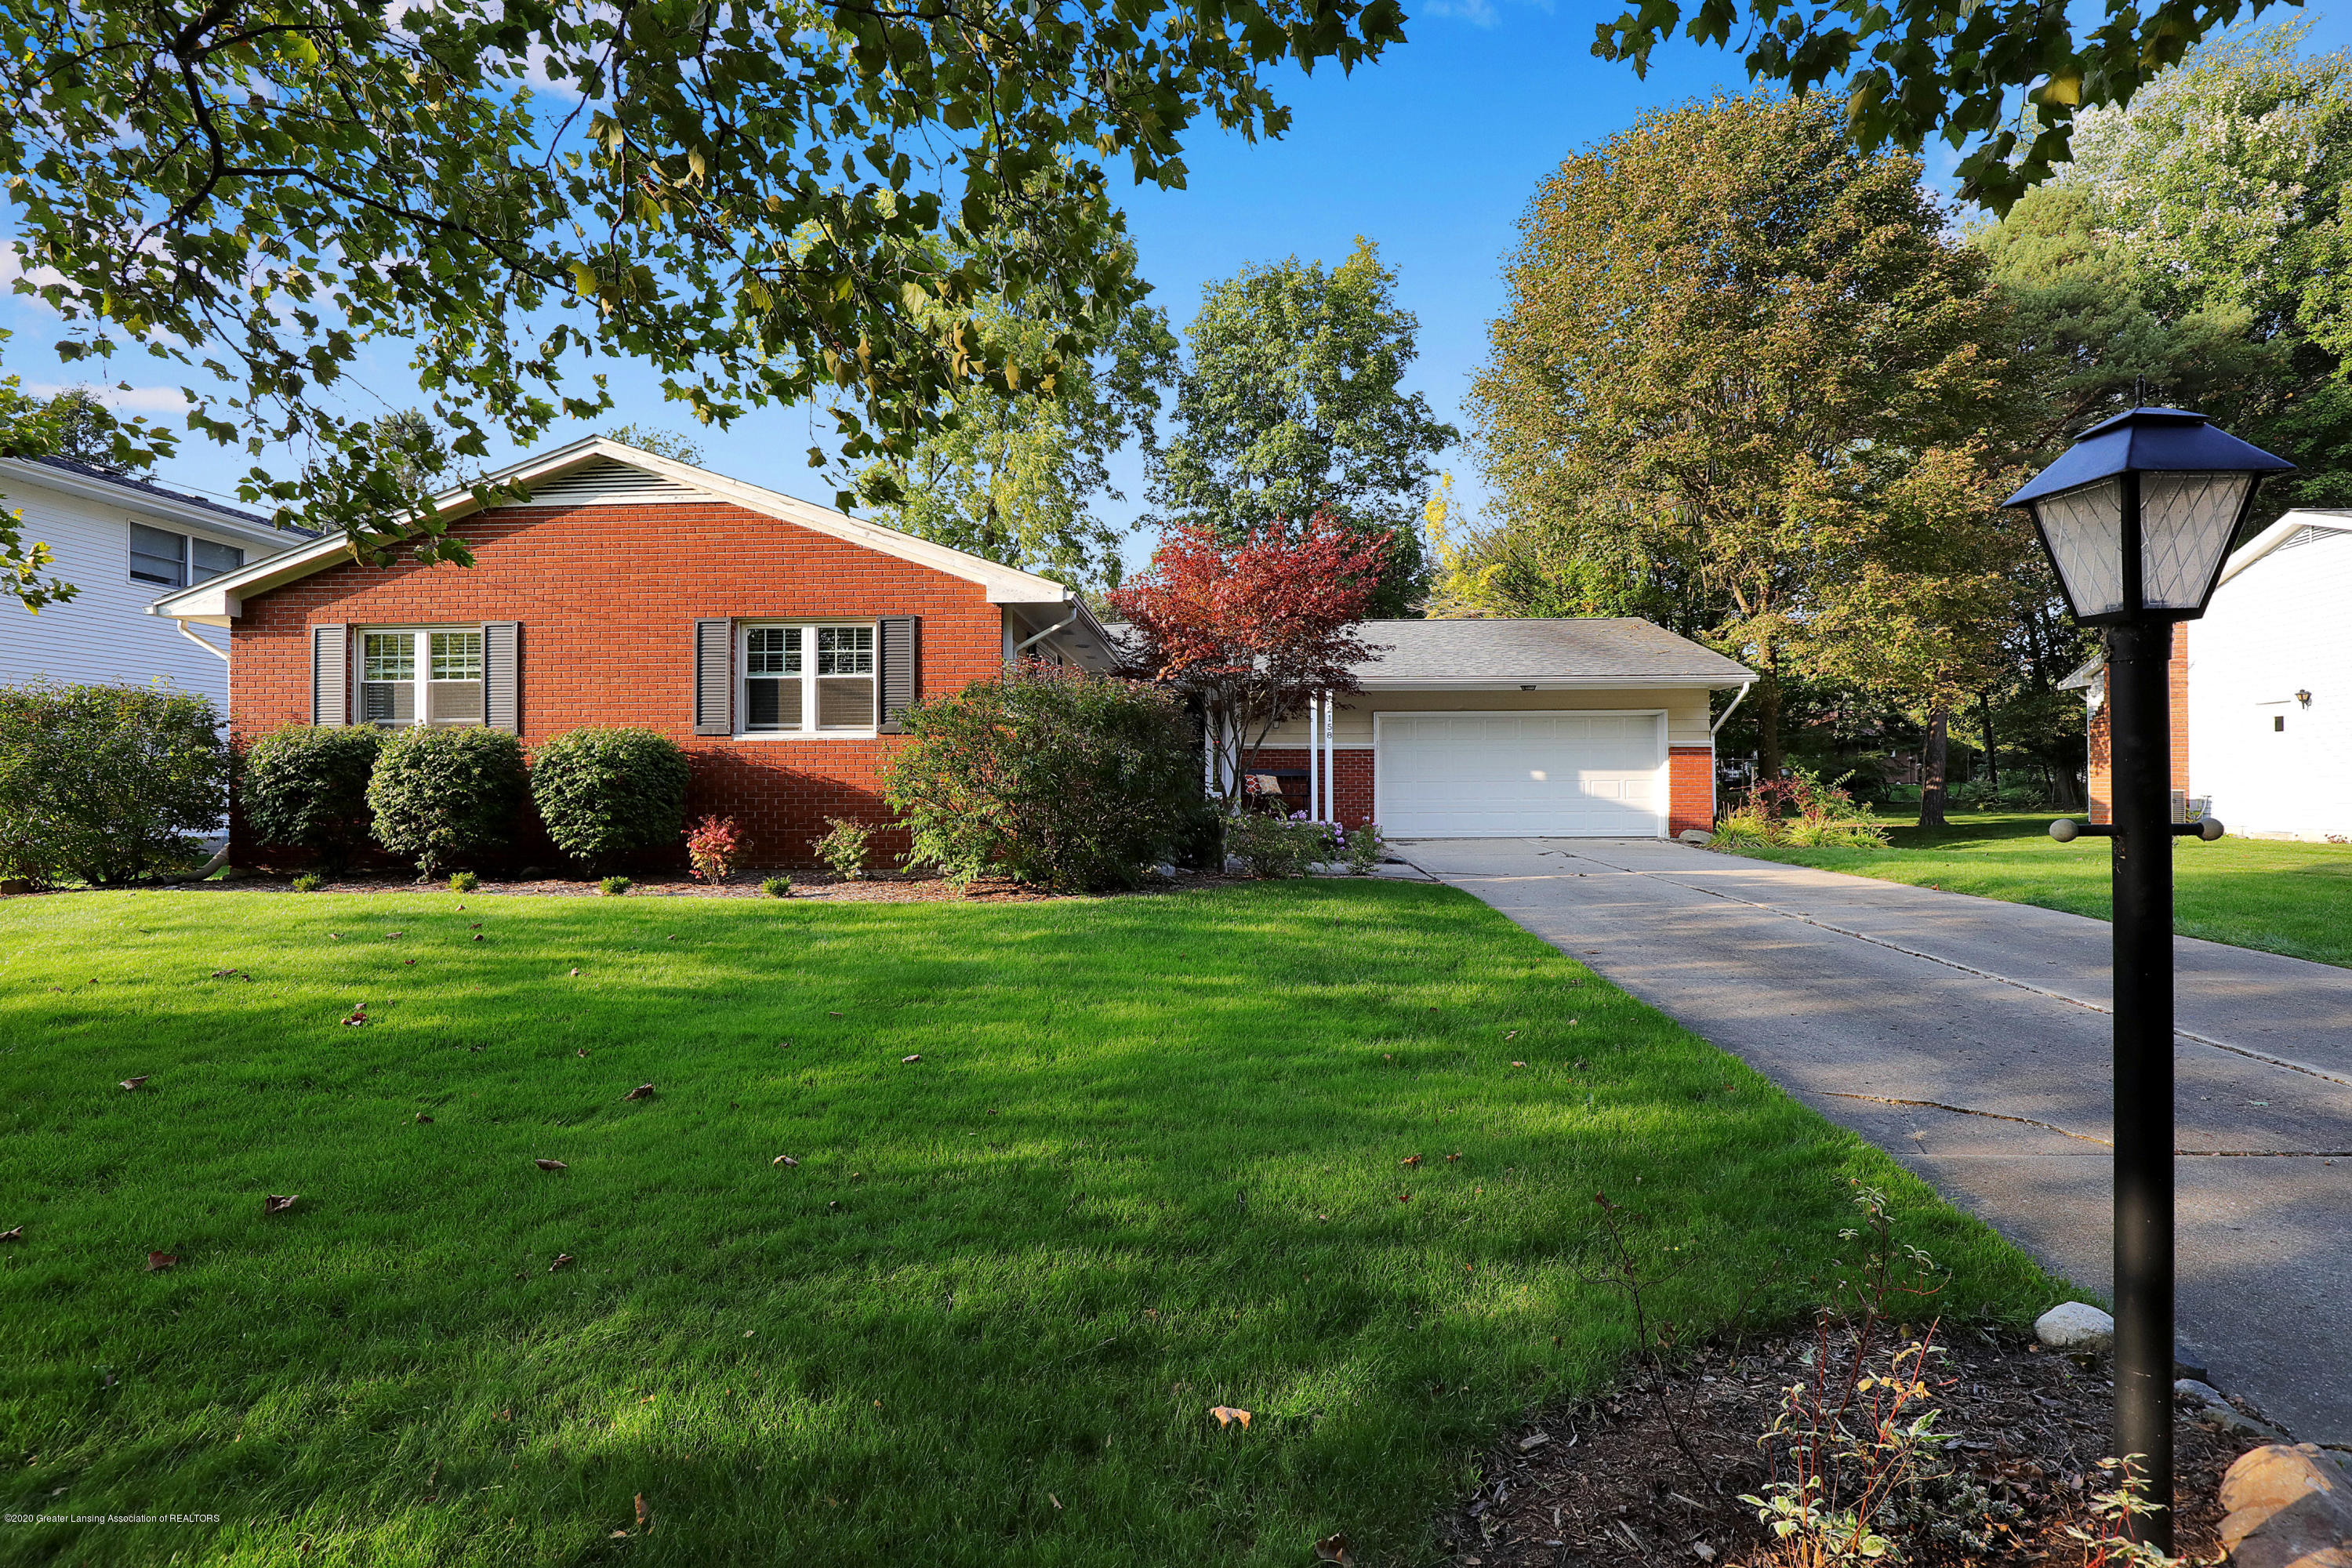 2158 Heritage Ave - 9I3A7265 - 1